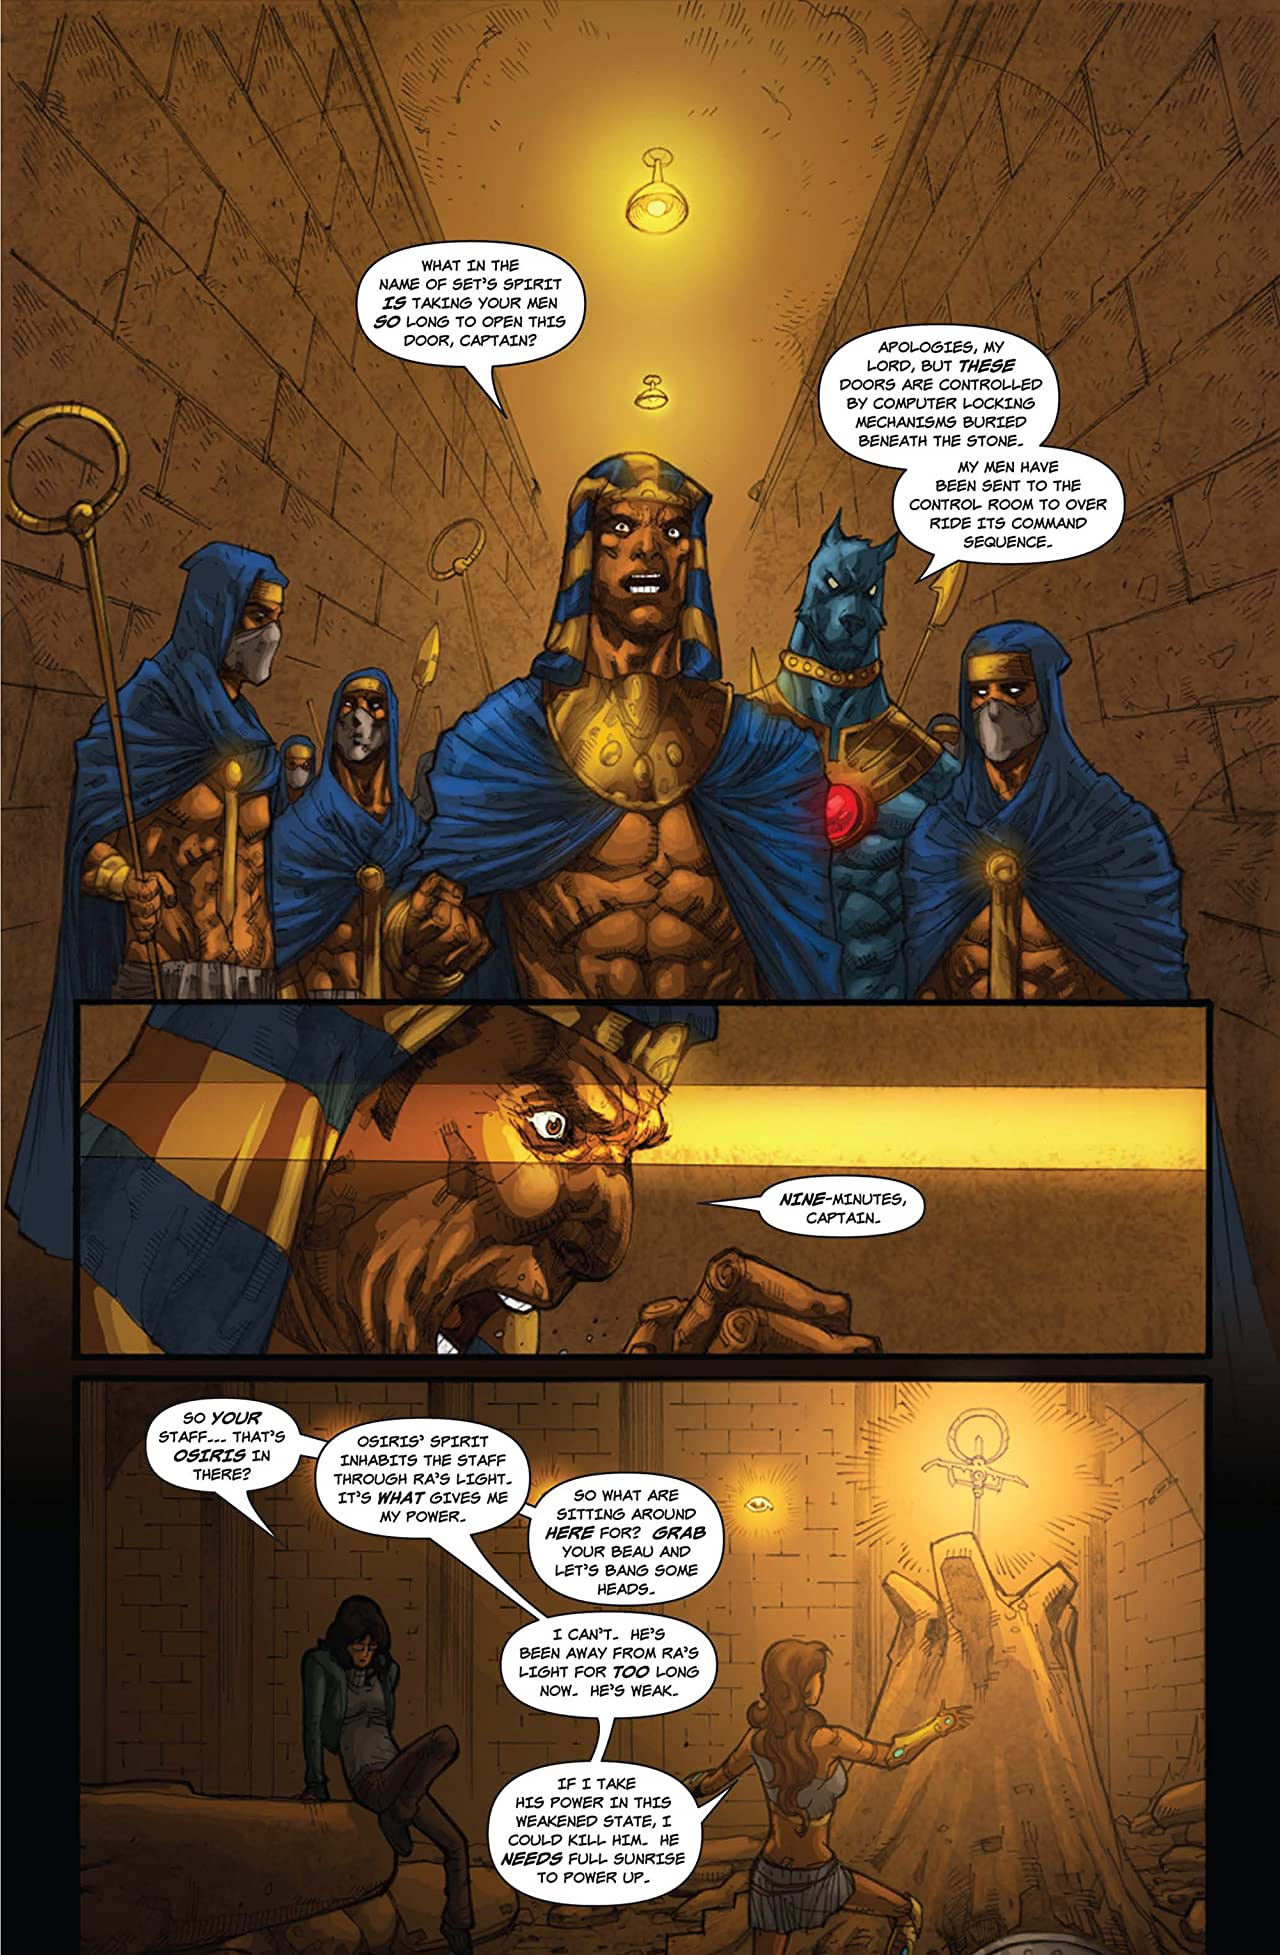 Legend of Isis Vol. 3 #4: Dogs of War